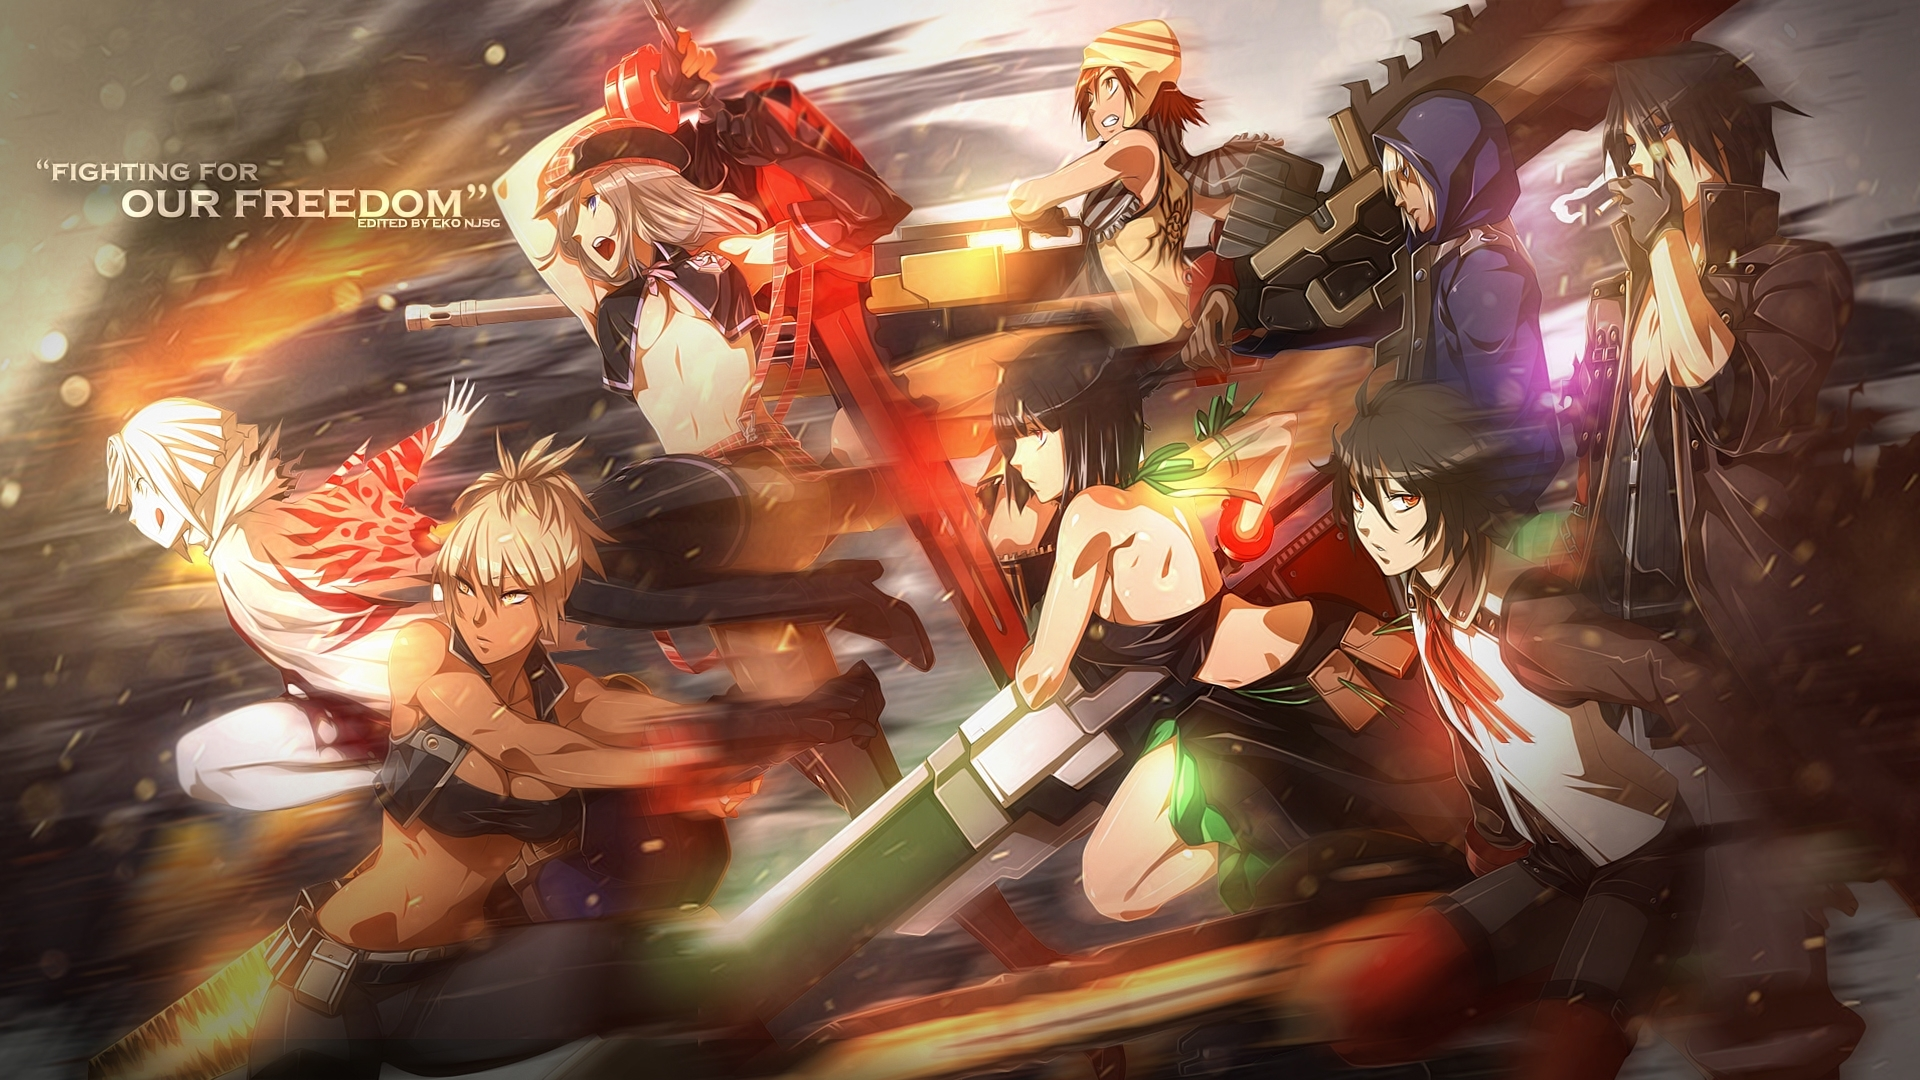 god eater full hd wallpaper and background image | 1920x1080 | id